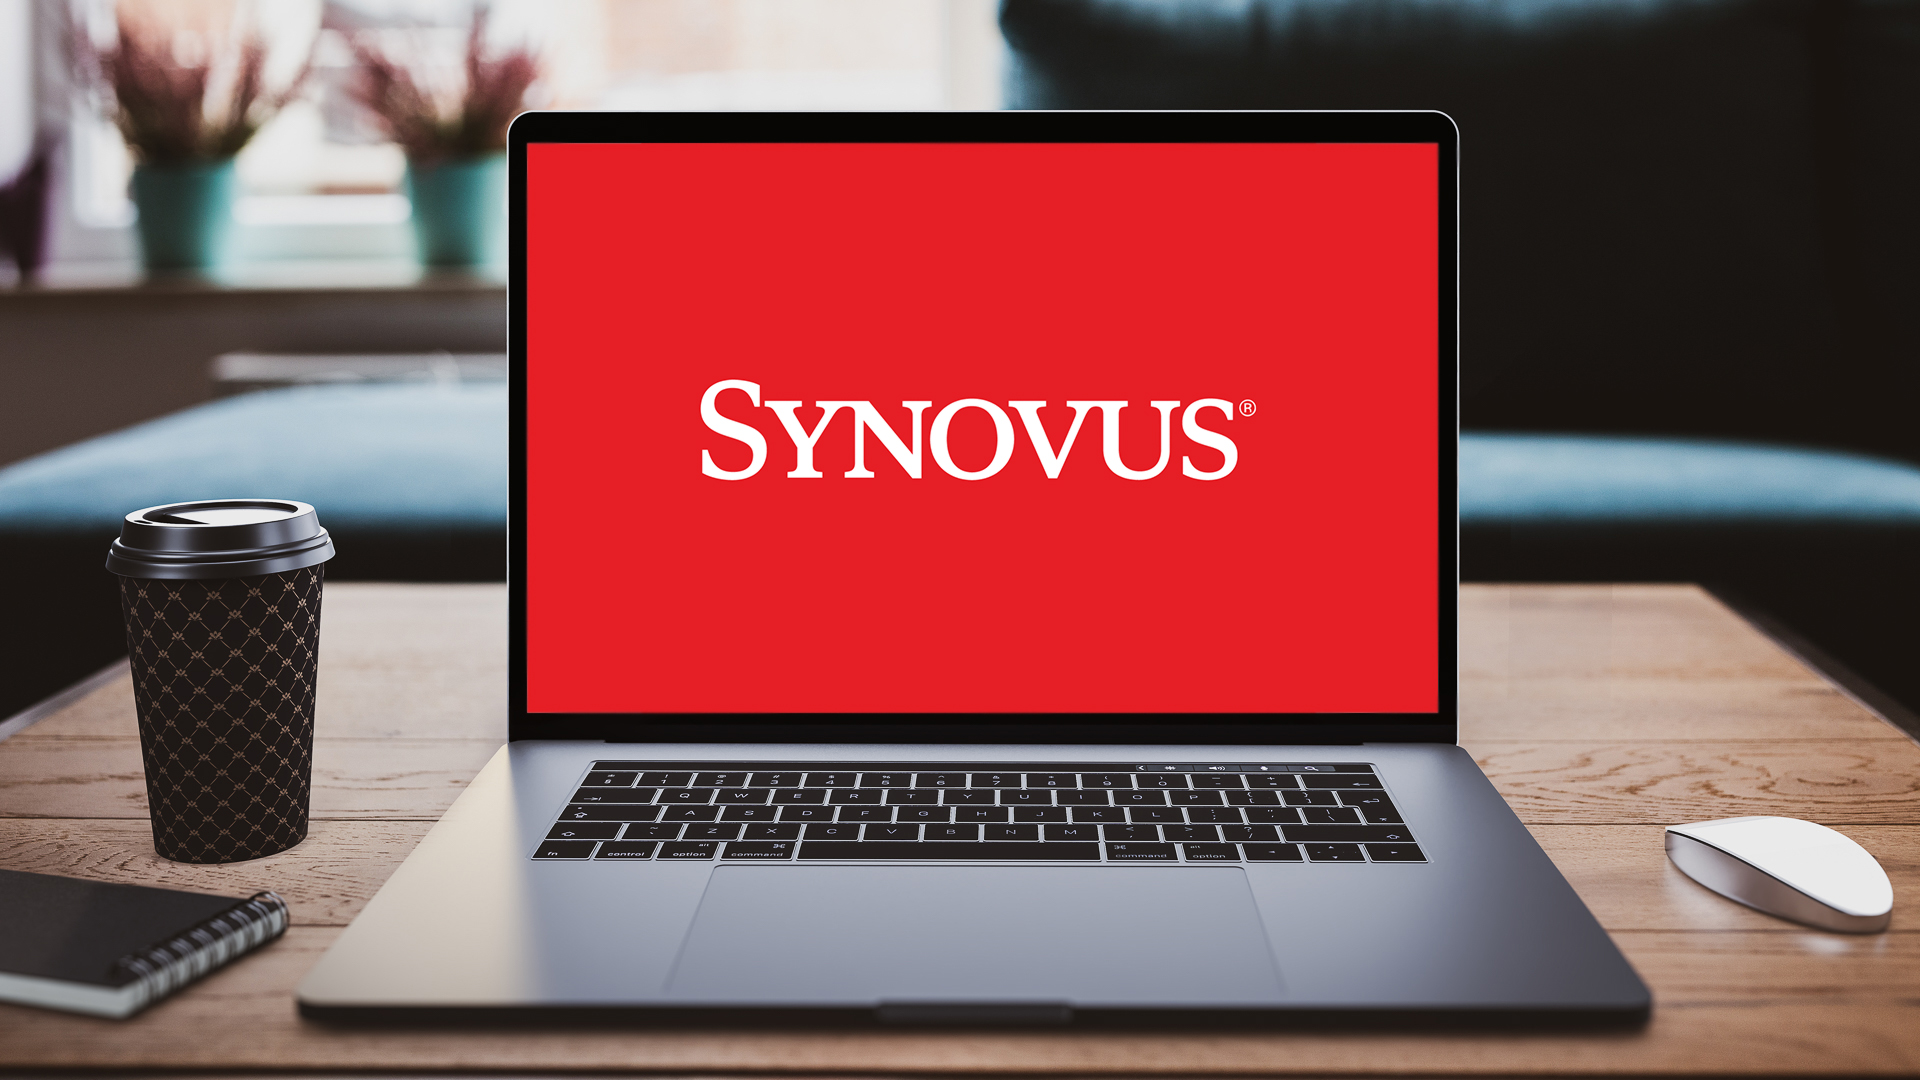 Synovus Bank website